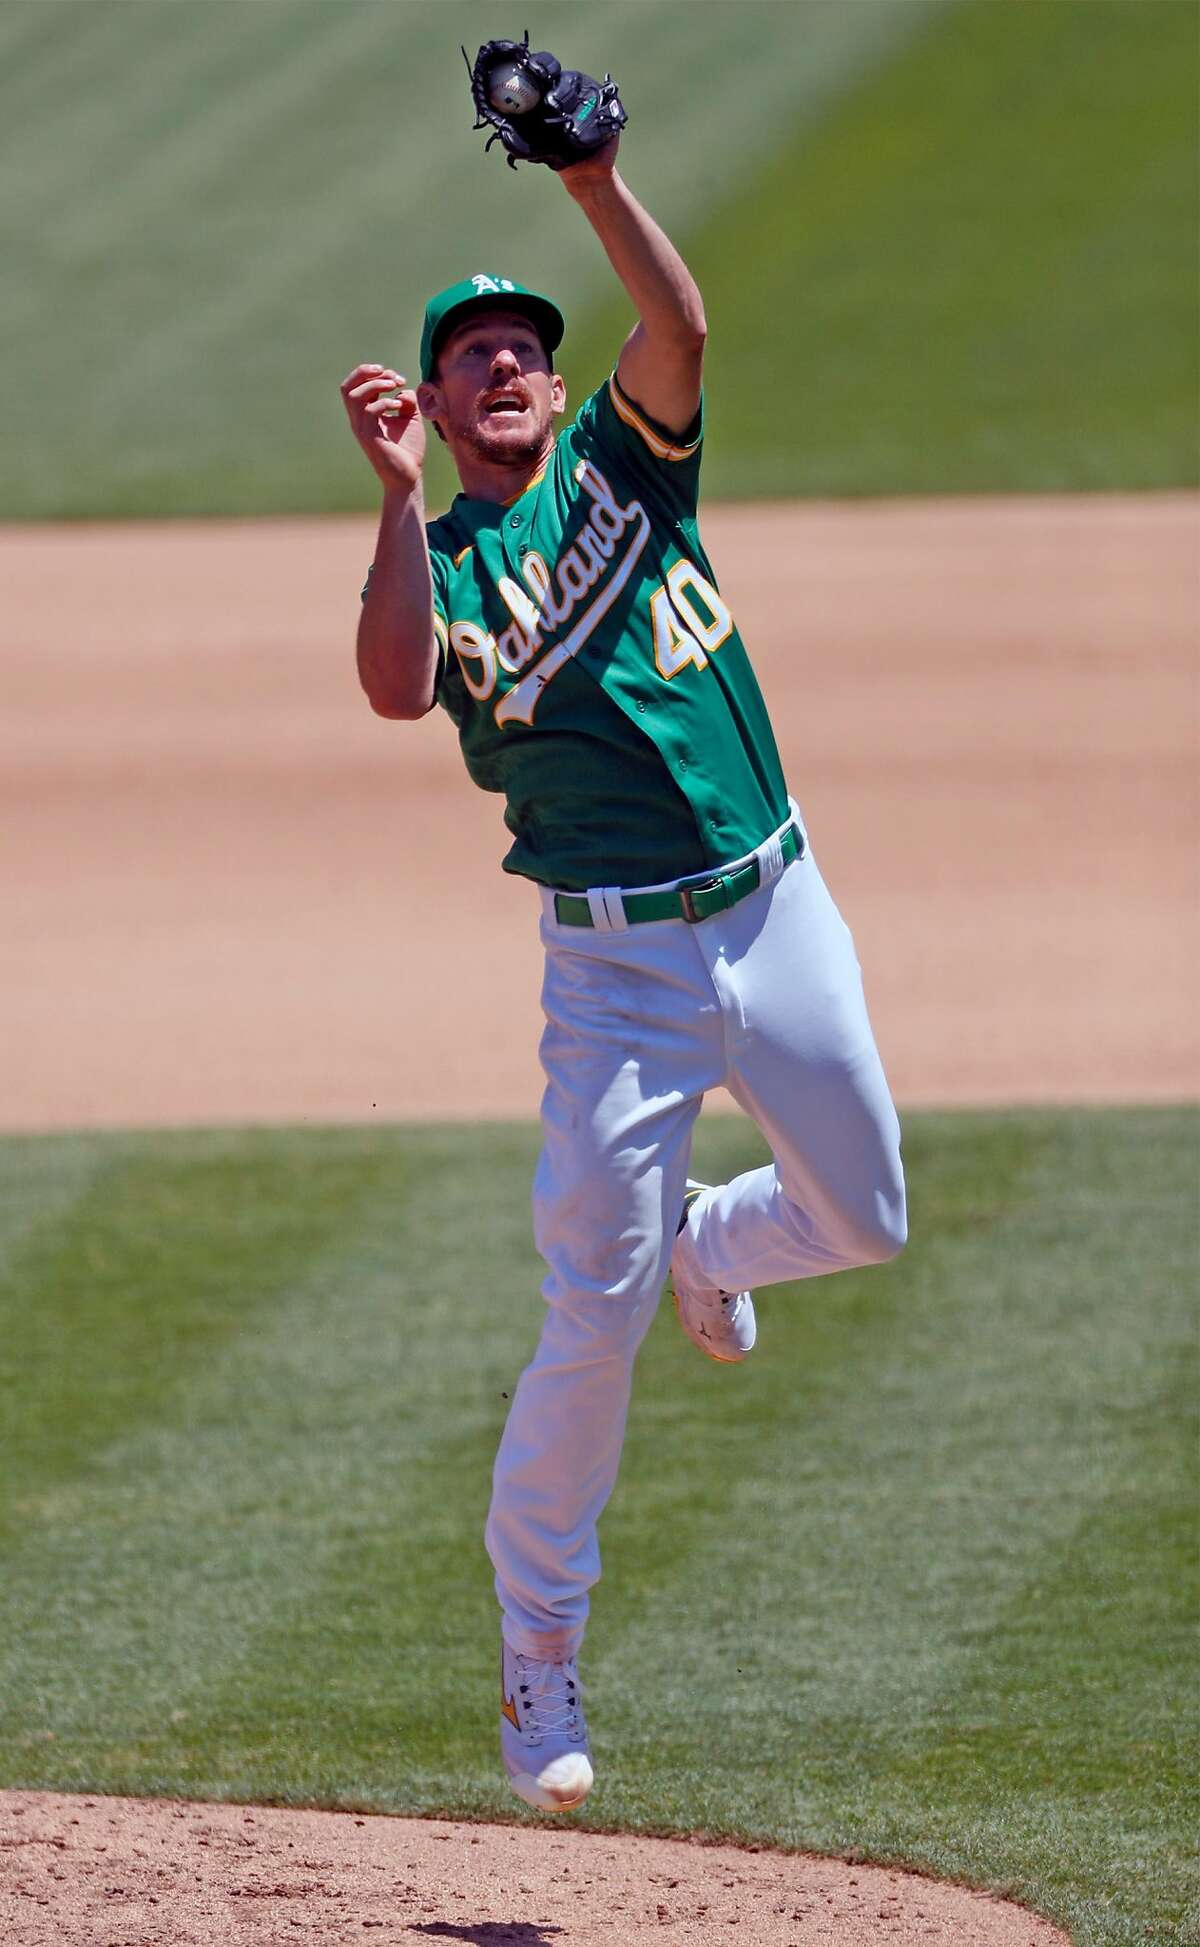 With the bases loaded, Oakland Athletics' pitcher Chris Bassitt snags a comeback by Los Angeles Angels' Andrelton Simmons to start an inning-ending double play in 4th inning during MLB game at Oakland Coliseum in Oakland, Calif., on Monday, July 27, 2020.